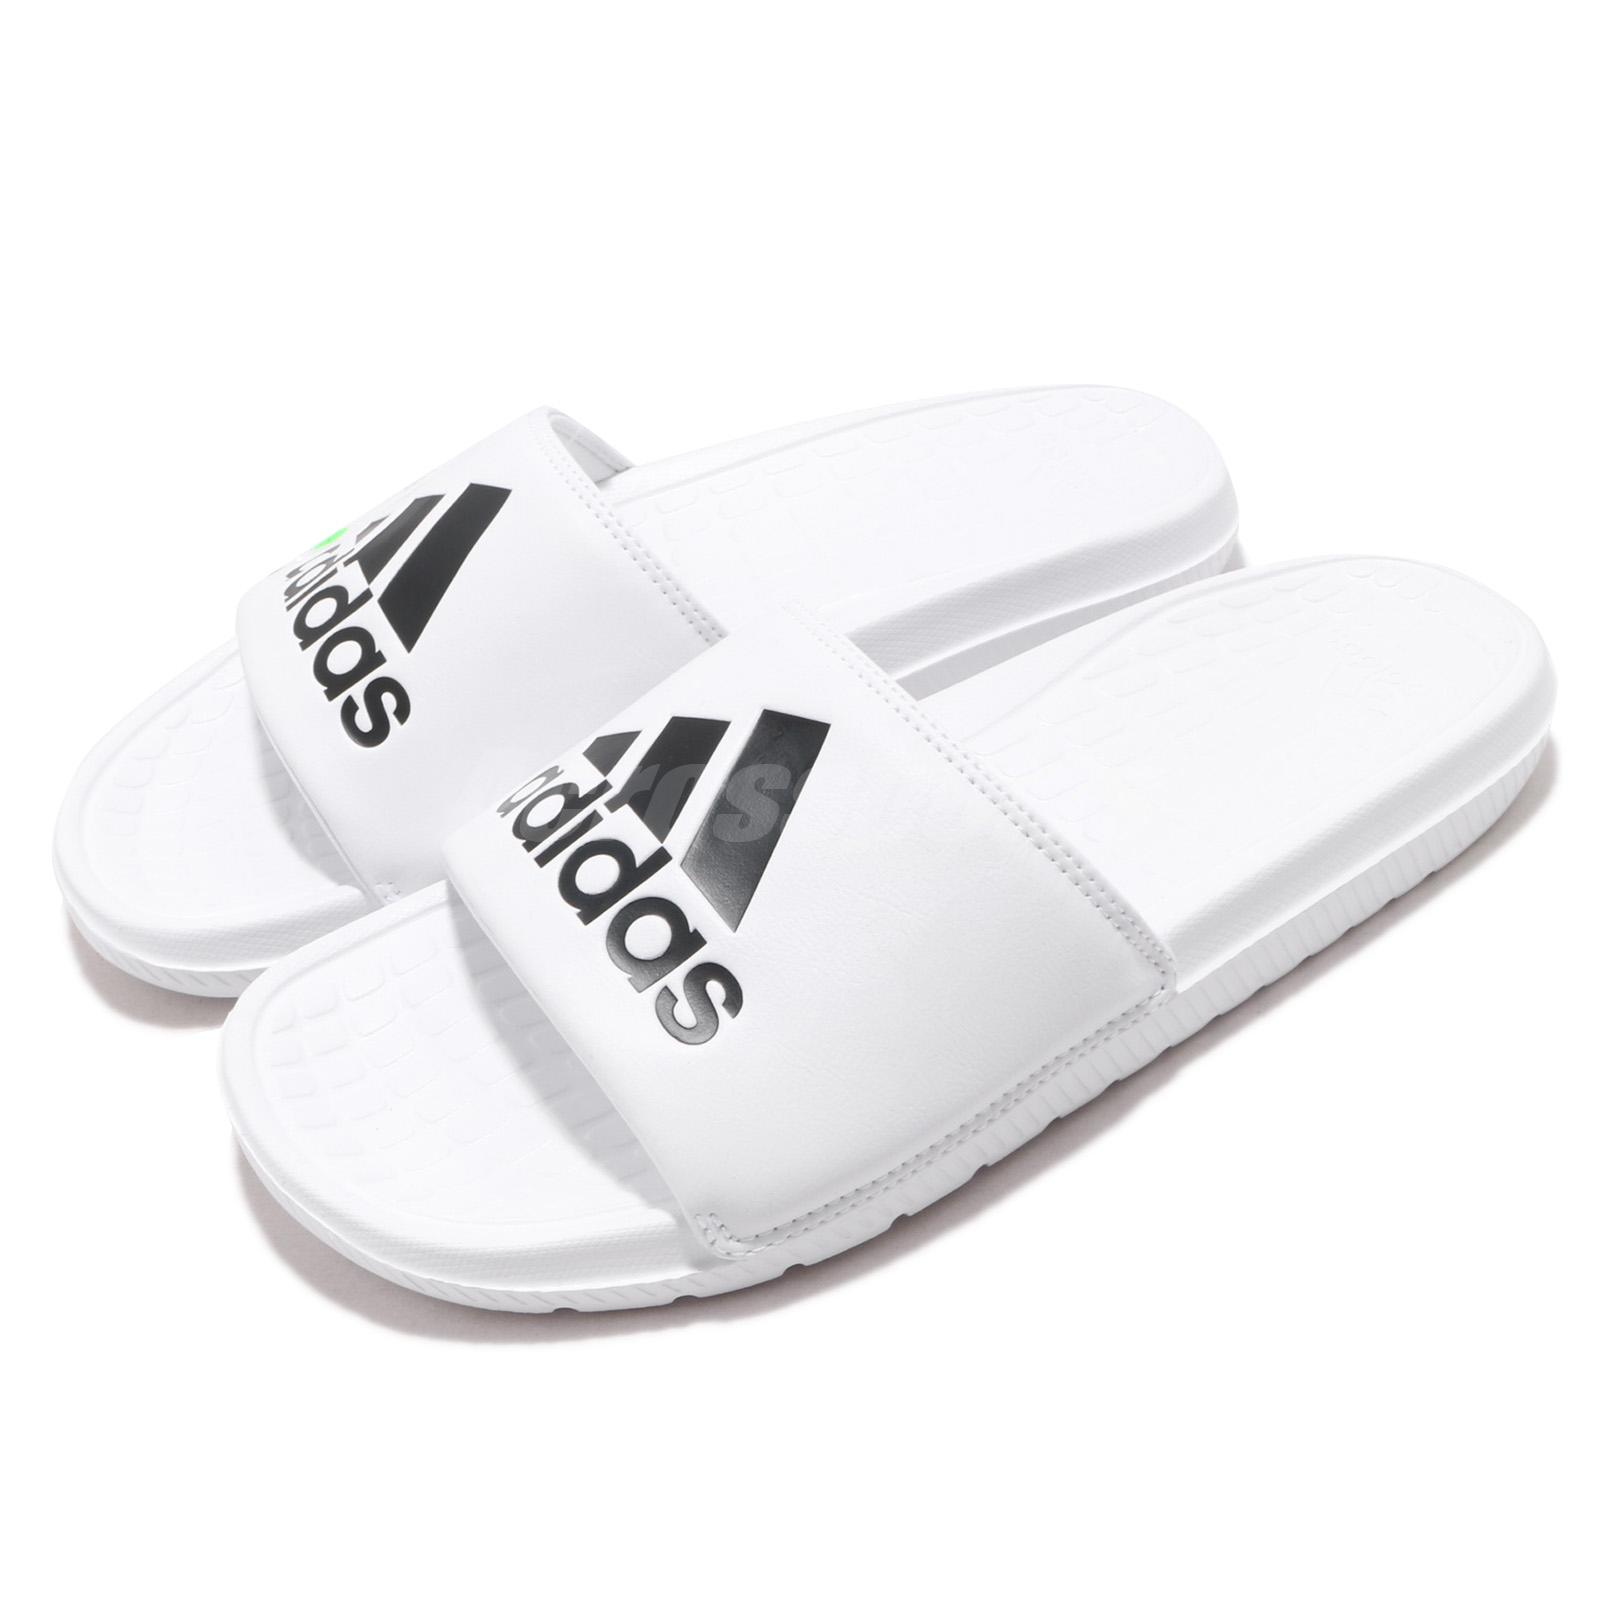 wholesale dealer 3a79b cf555 Details about adidas Voloomix Slides Logo White Black Men Sports Sandals  Slippers CP9447